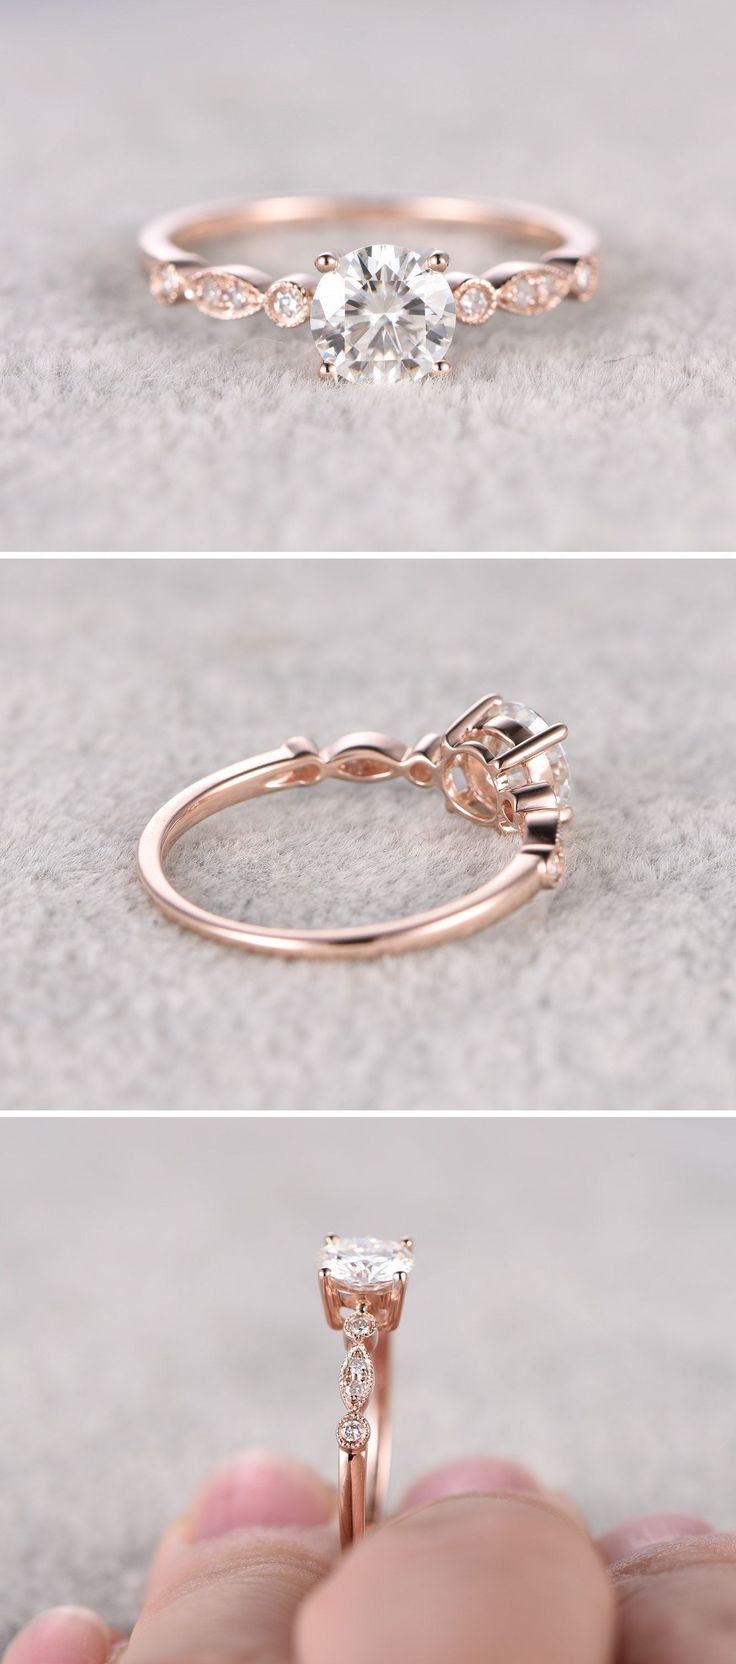 Moissanite in Rose Gold Engagement Ring - Gardening Aisle wedding rings pictures simple vintage sets wedding rings sets kay jewelers wedding rings wedding rings for men zales wedding rings cheap wedding rings womens wedding ring sets unique wedding bands